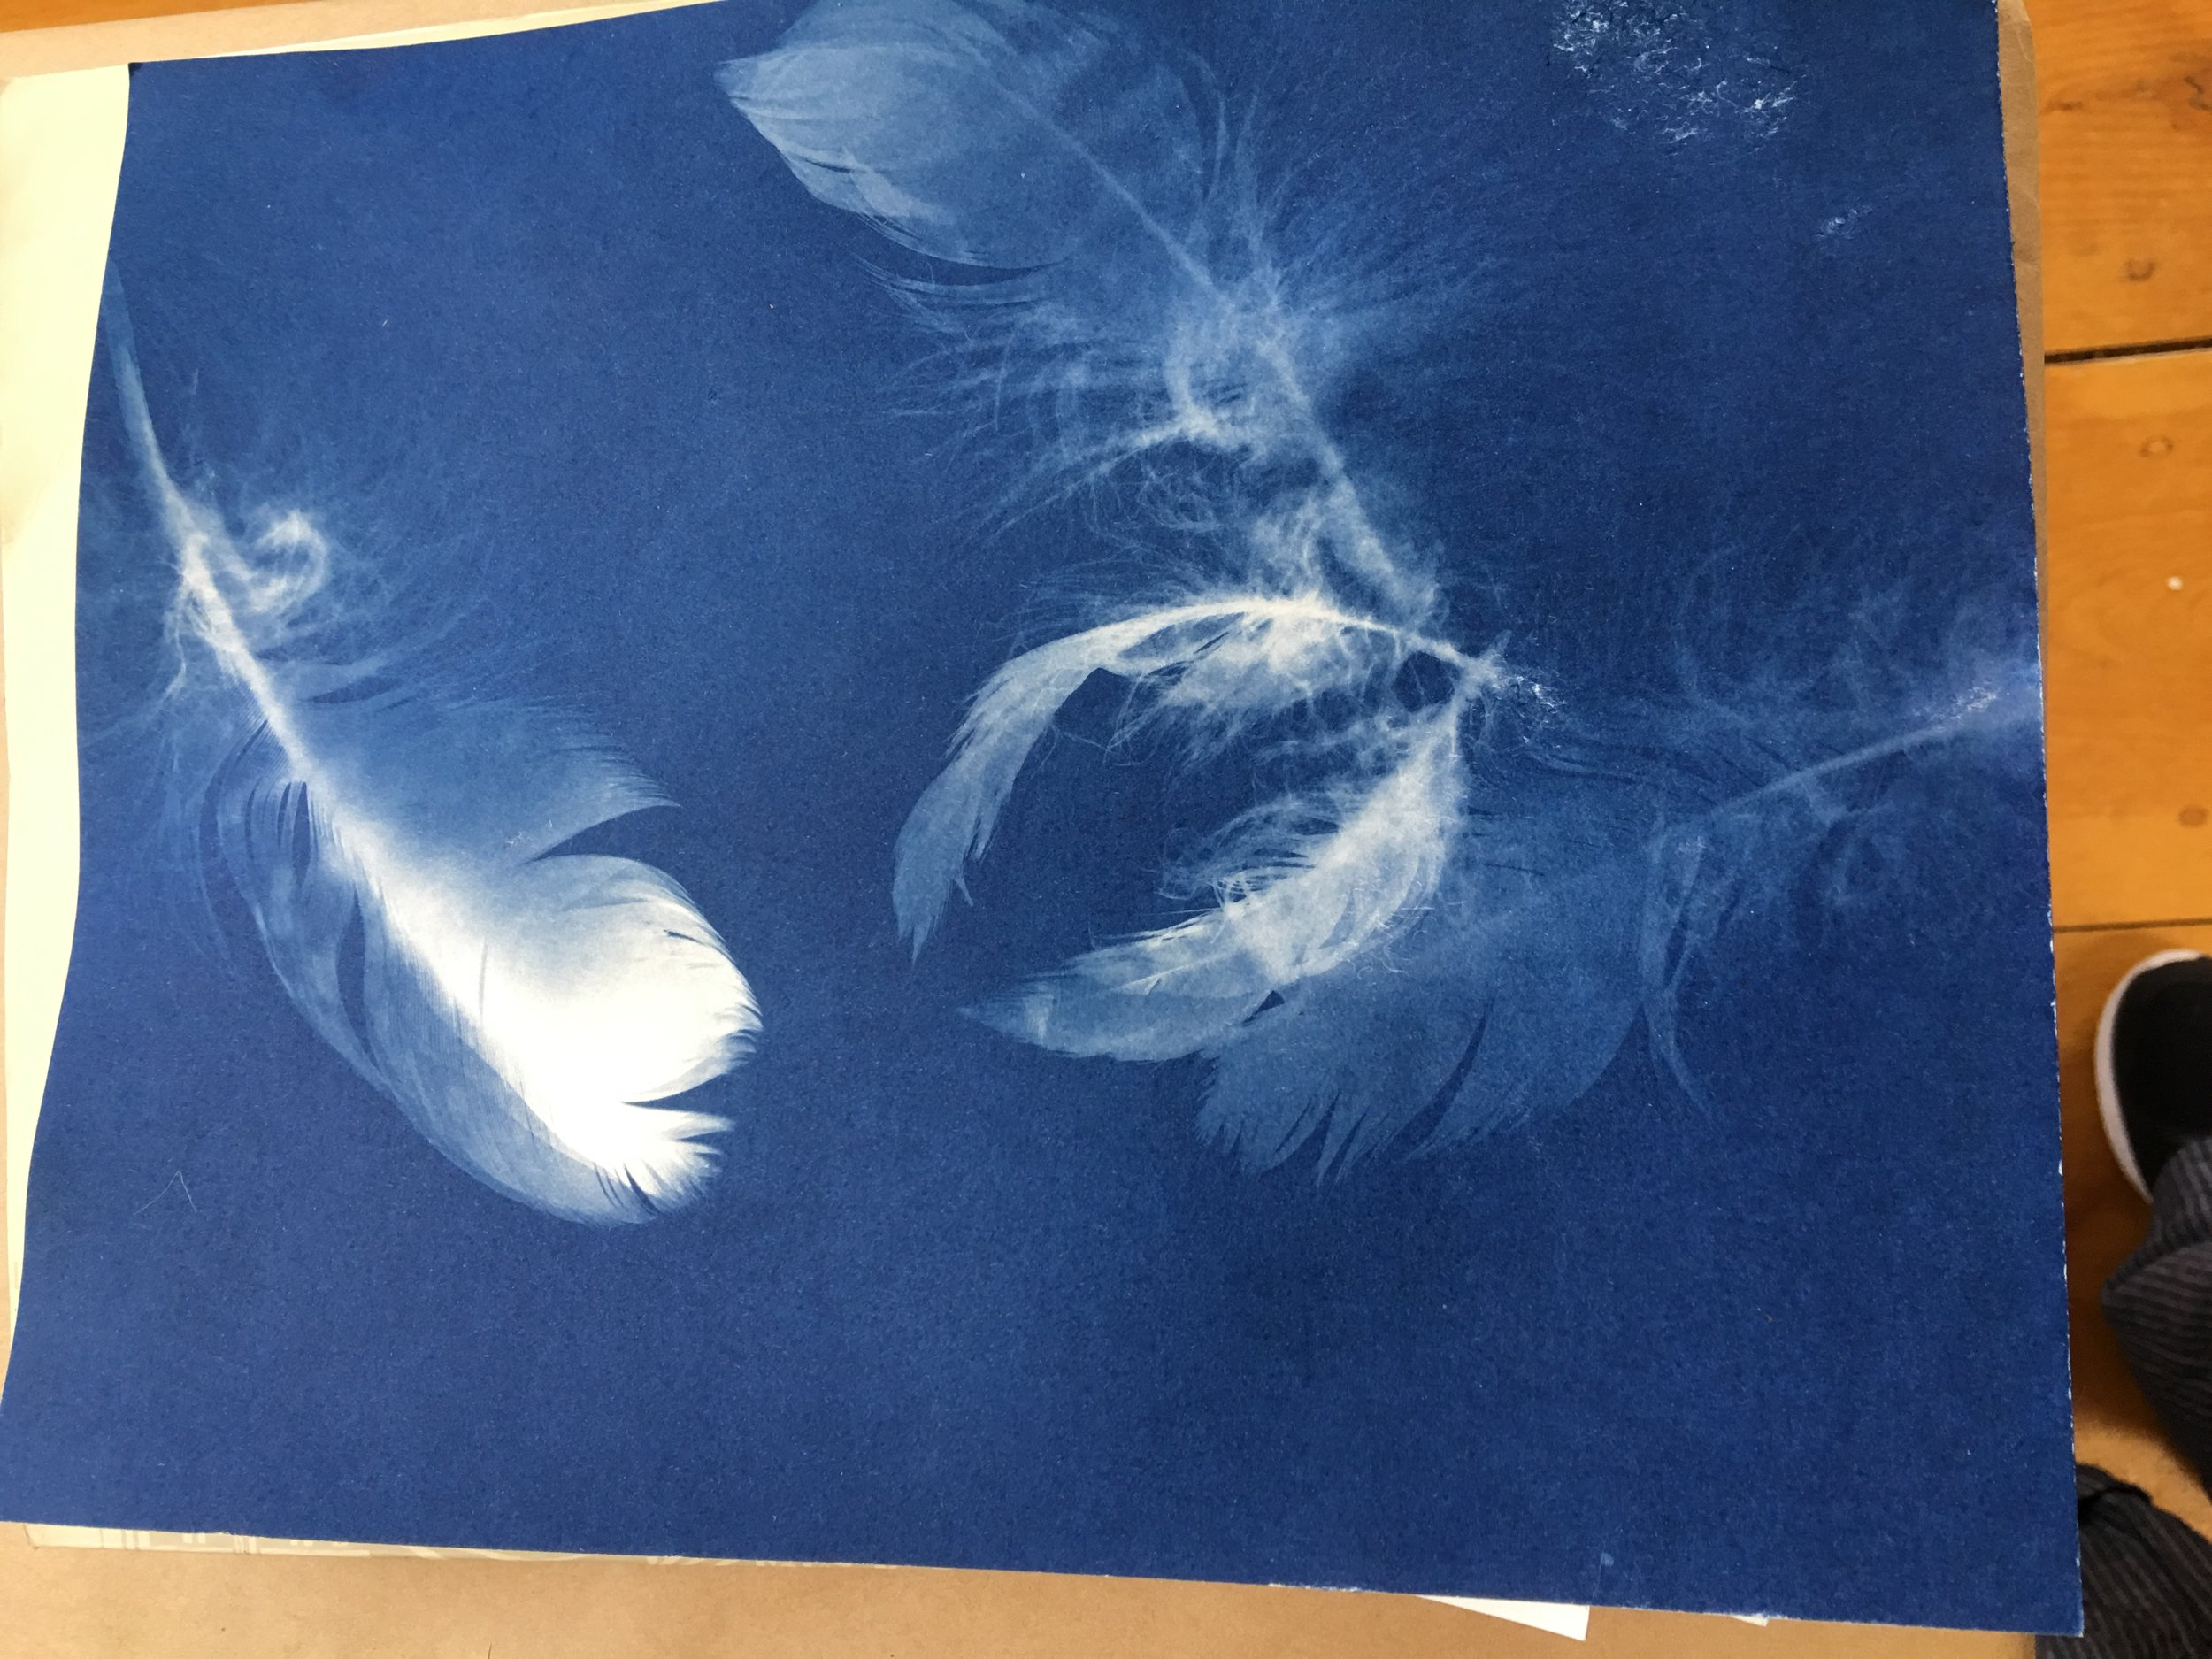 Feathers after exposure in the sun and developed in water.